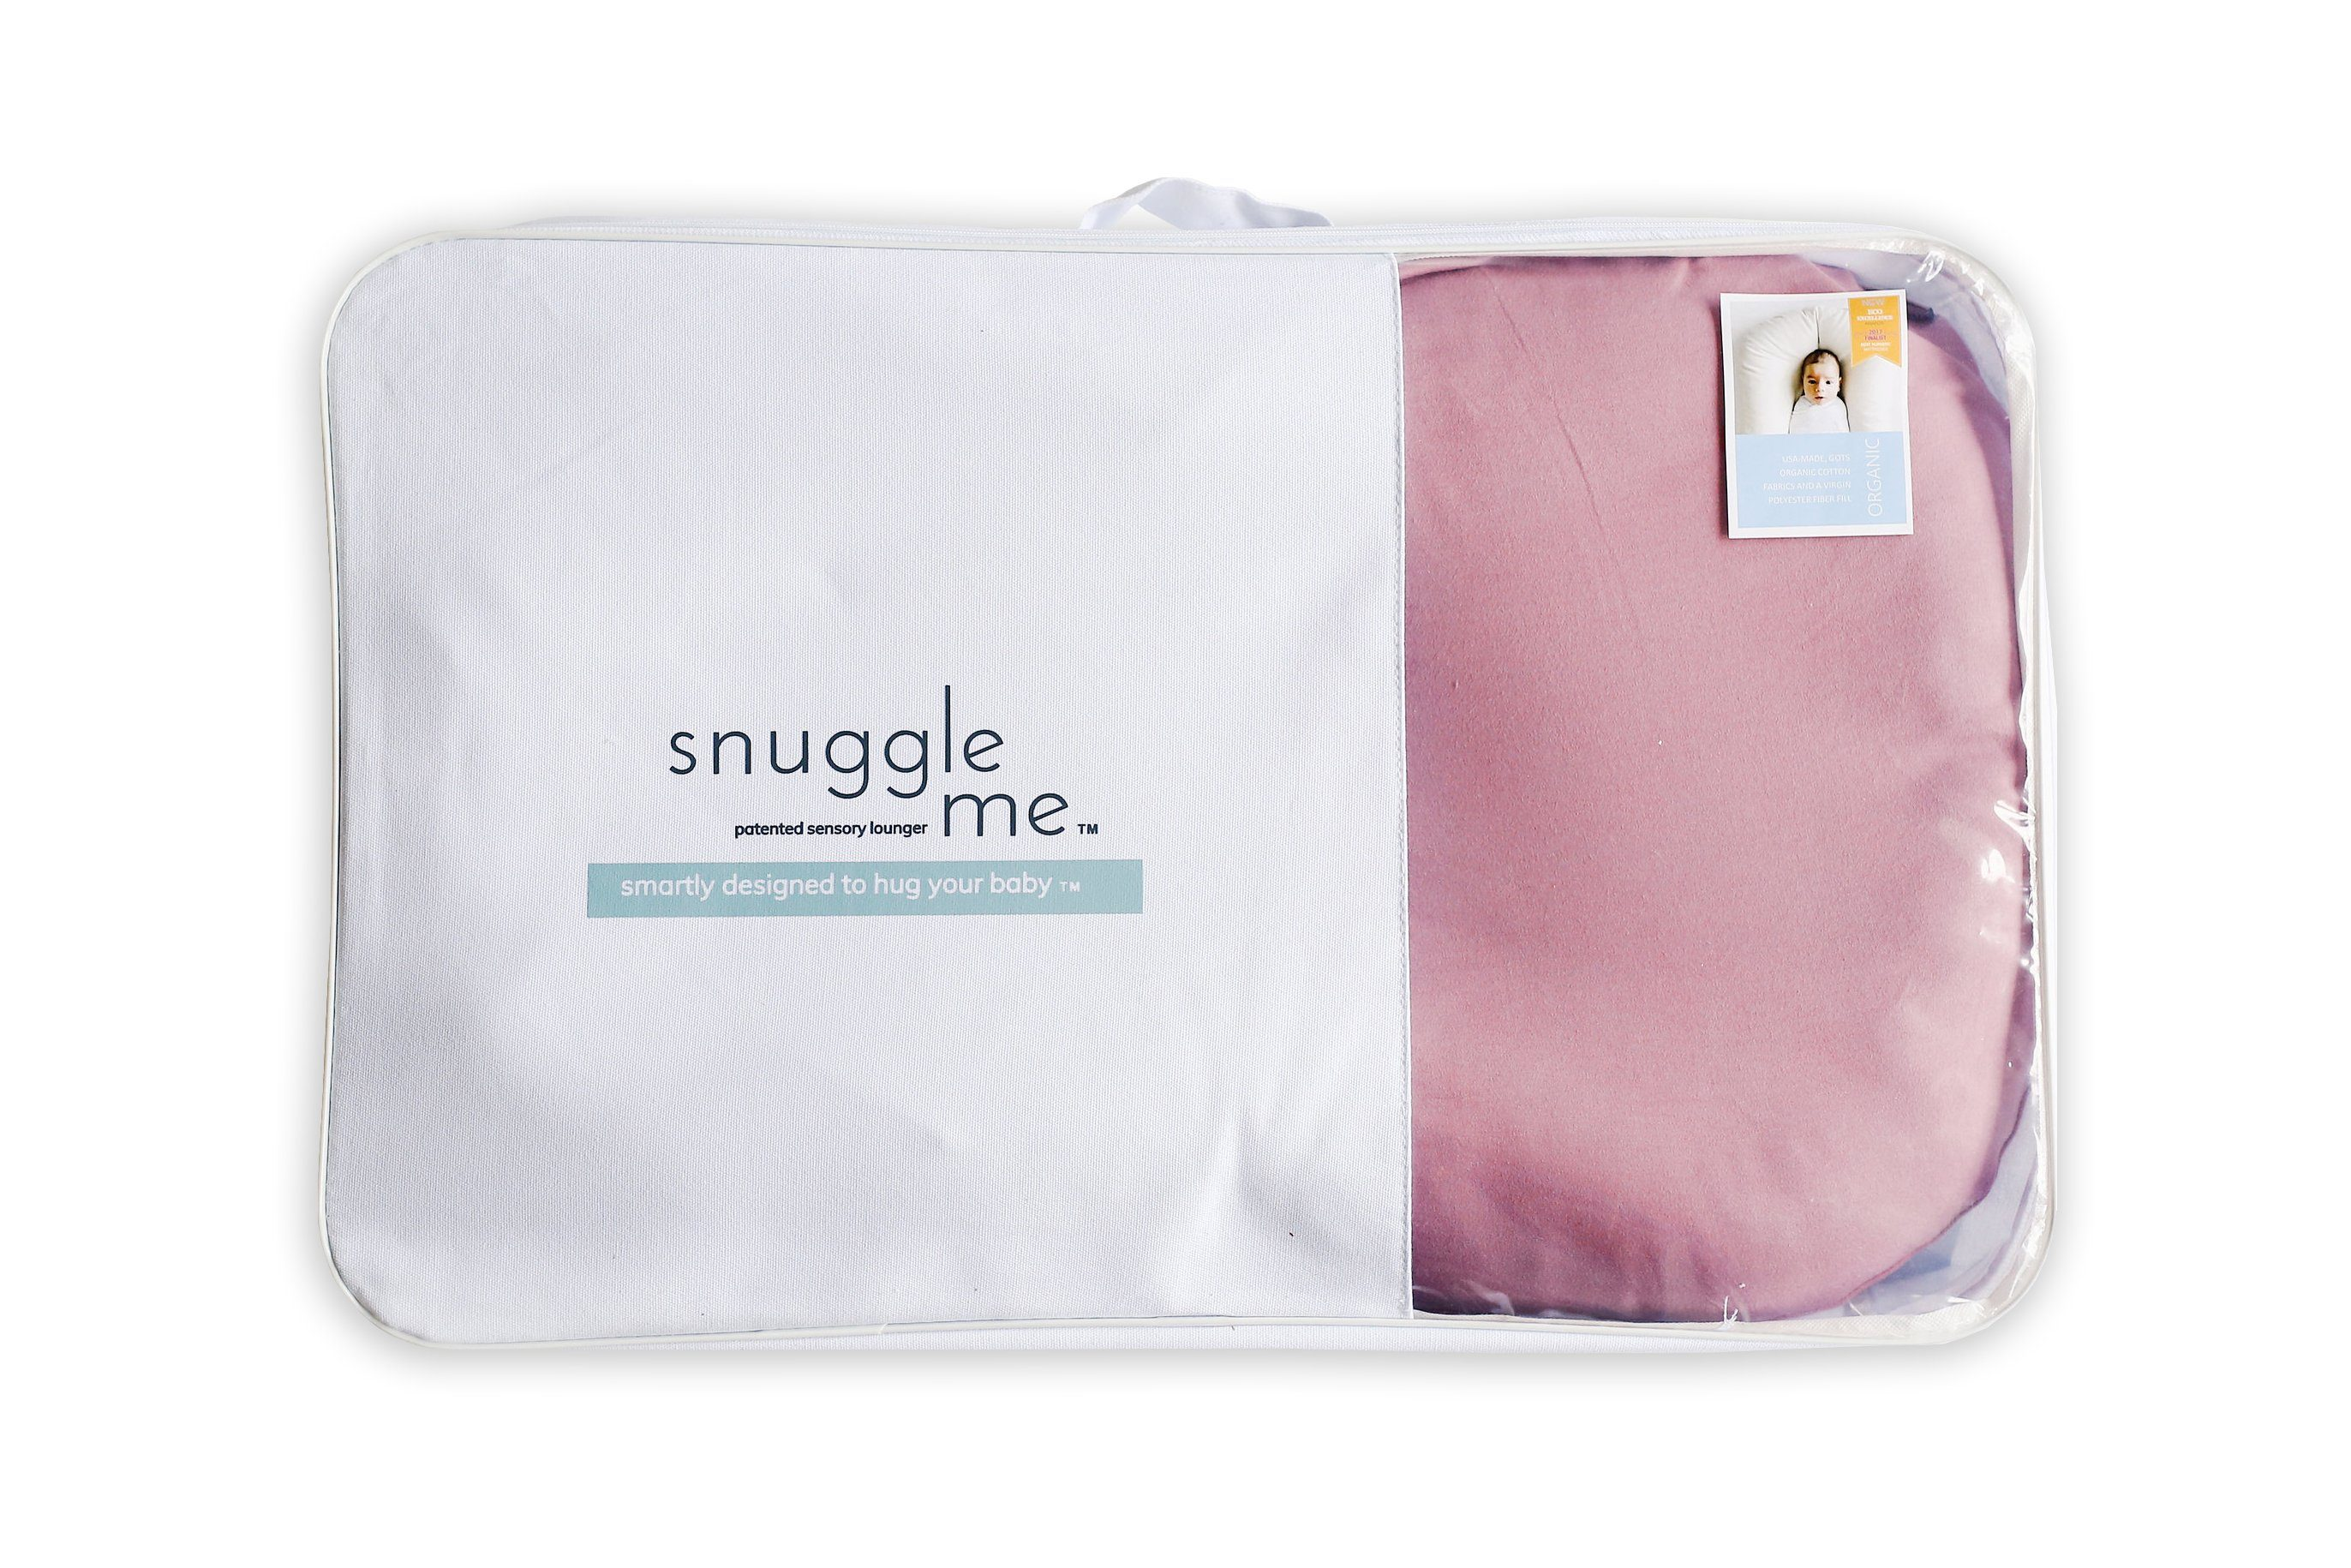 Snuggle Me Organic Lounger + Bloom Cover - Project Nursery